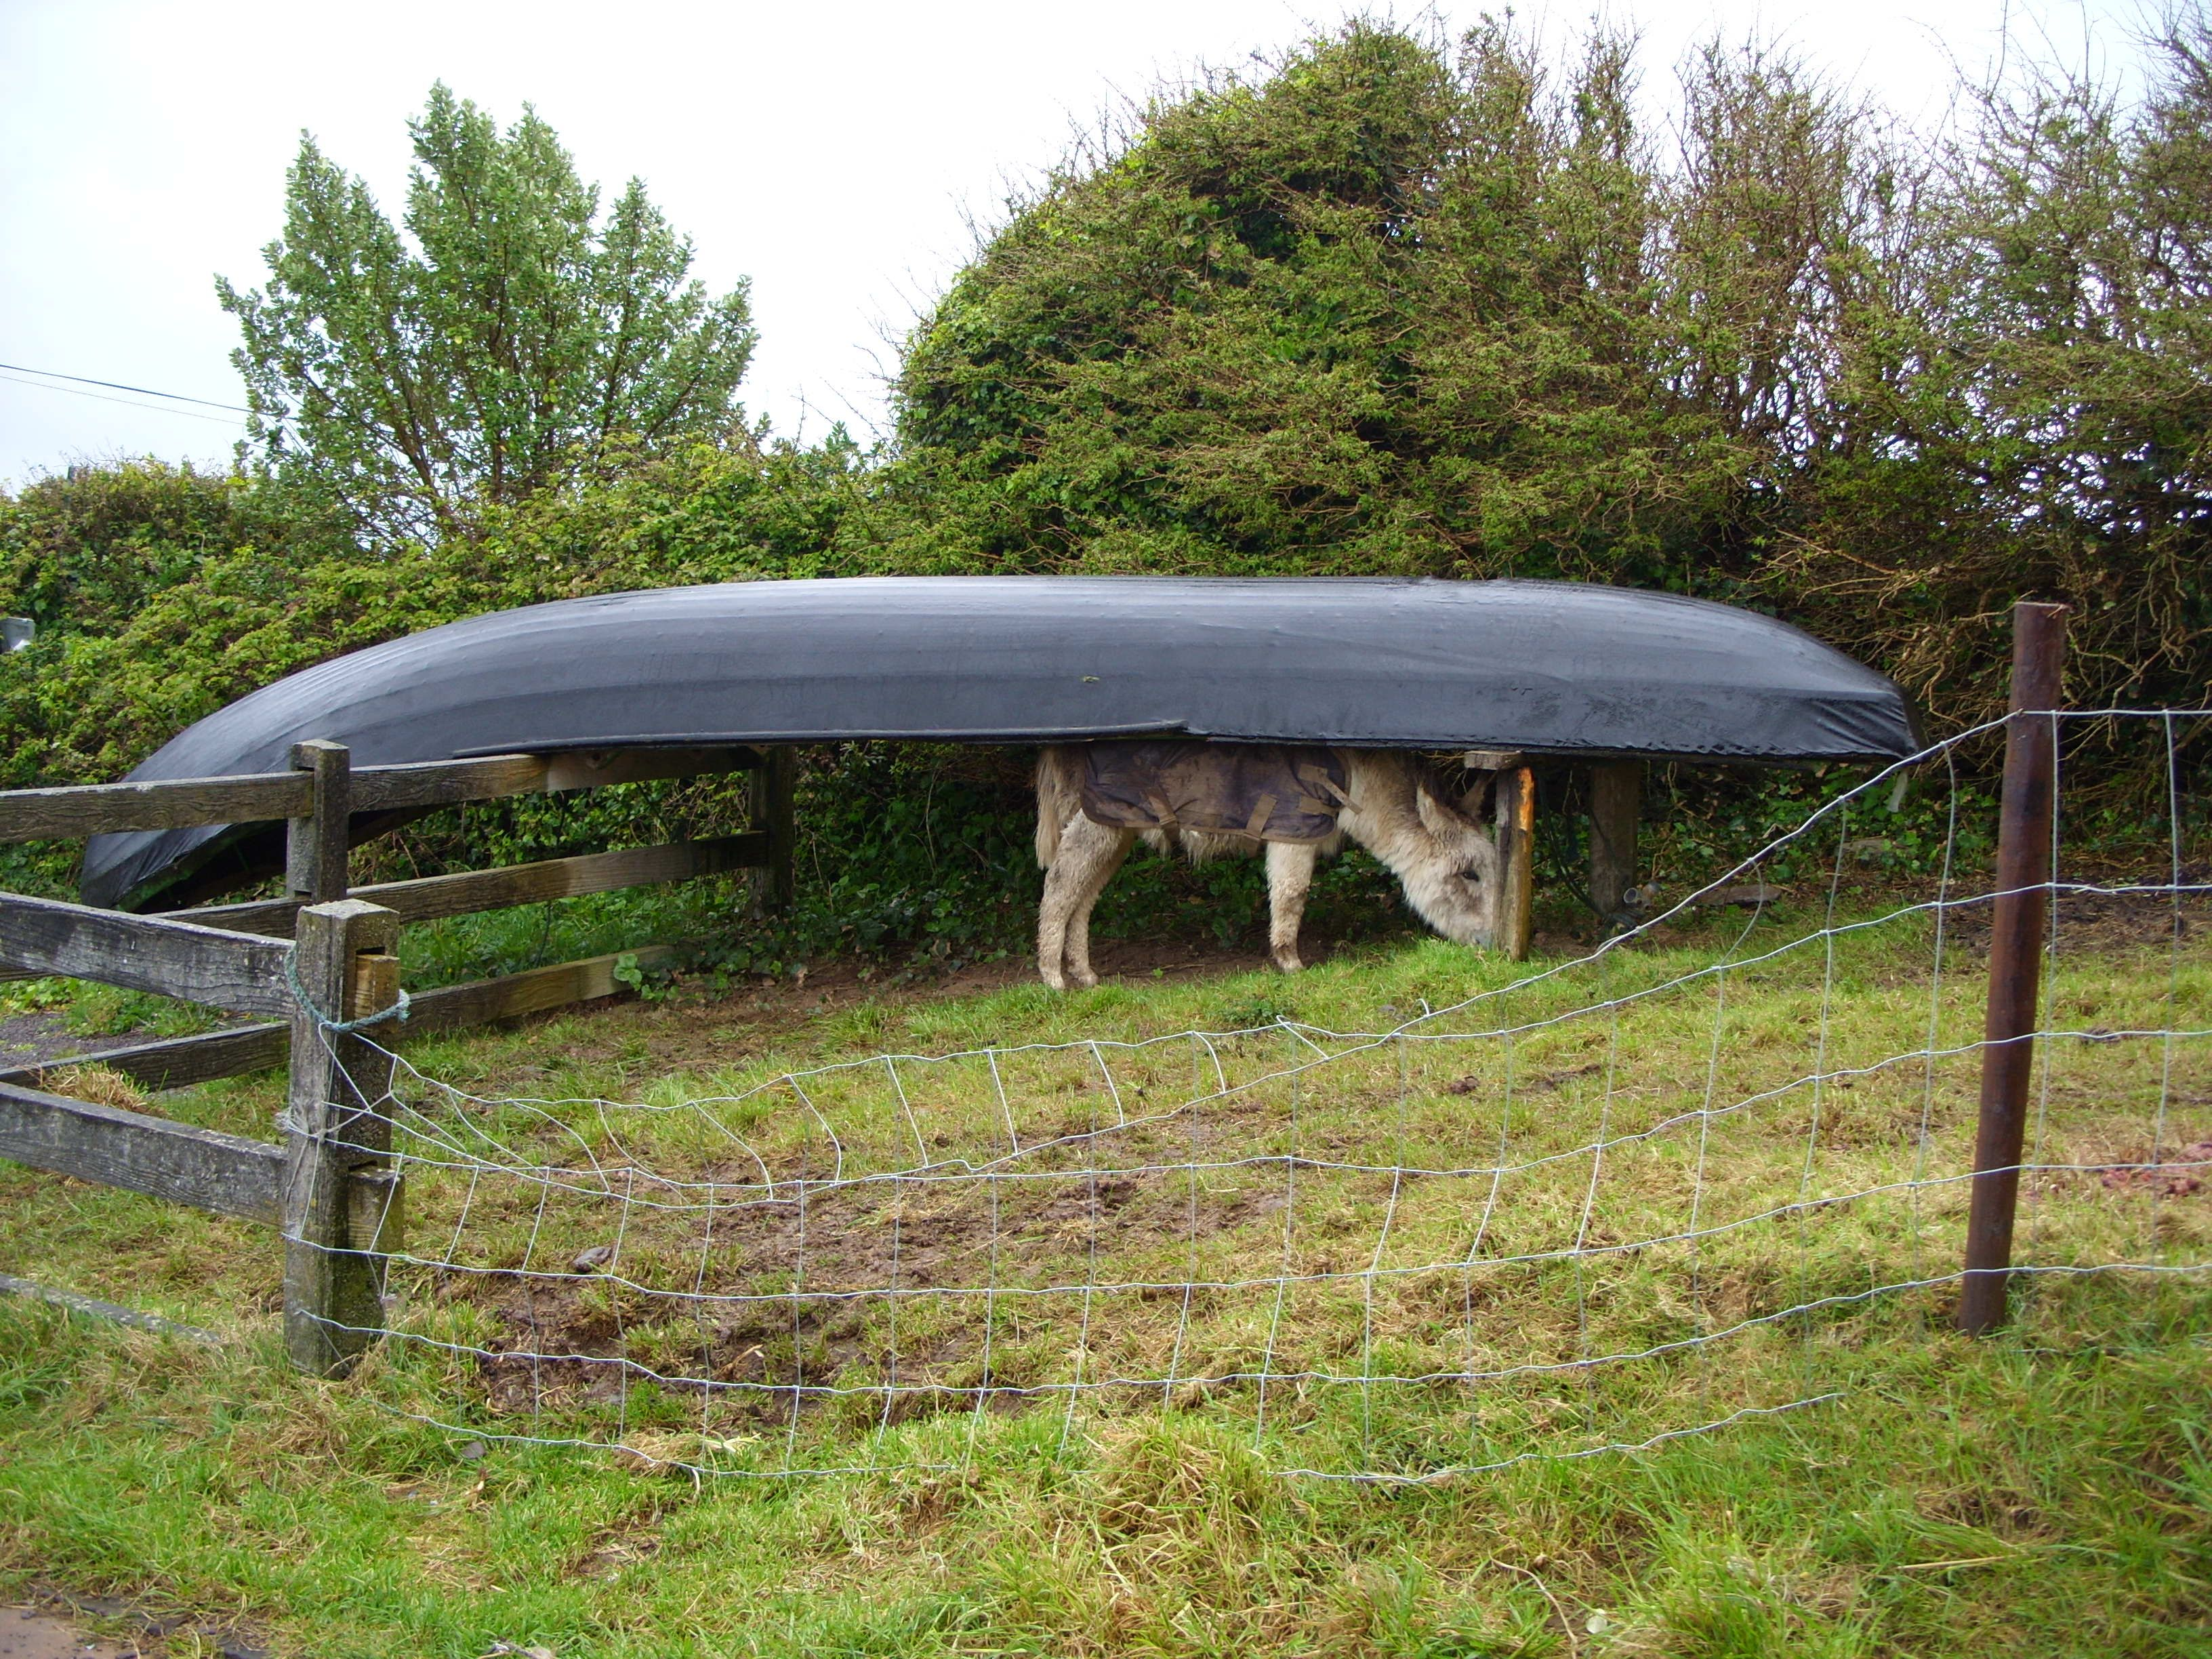 Air-dry shelter for the winter